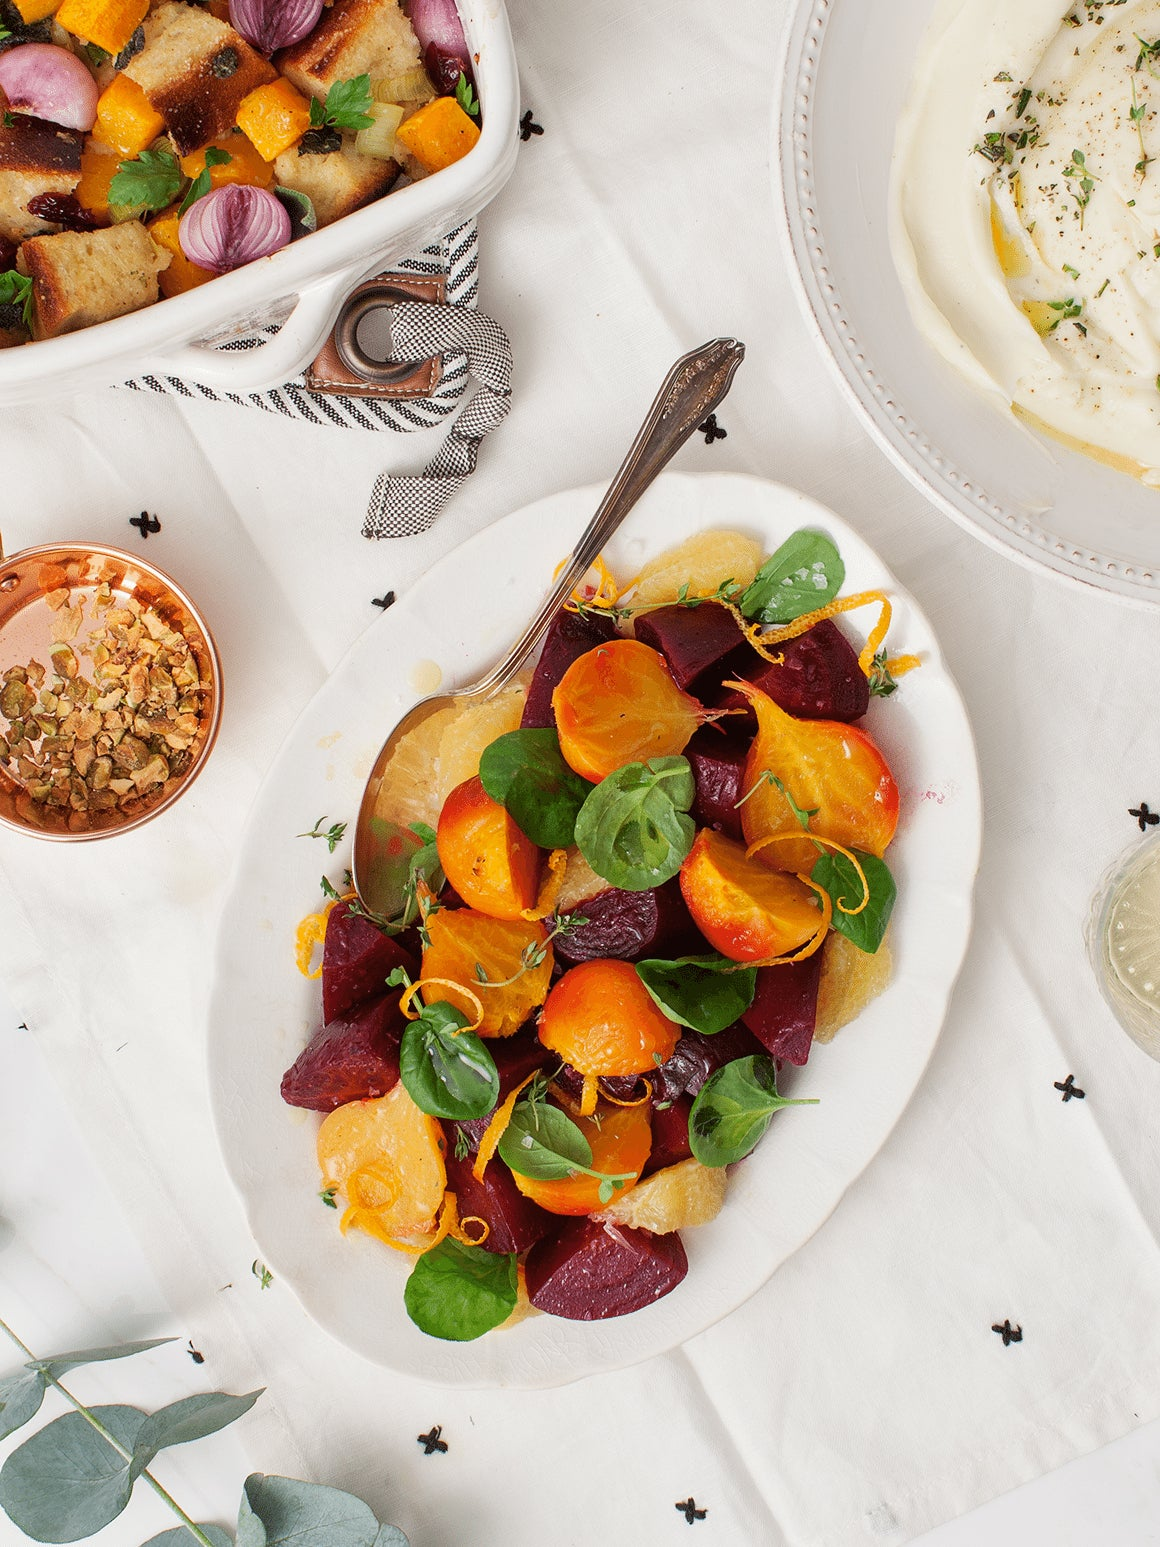 00-FEATURE-vegan-thanksgiving-domino-roasted-beets